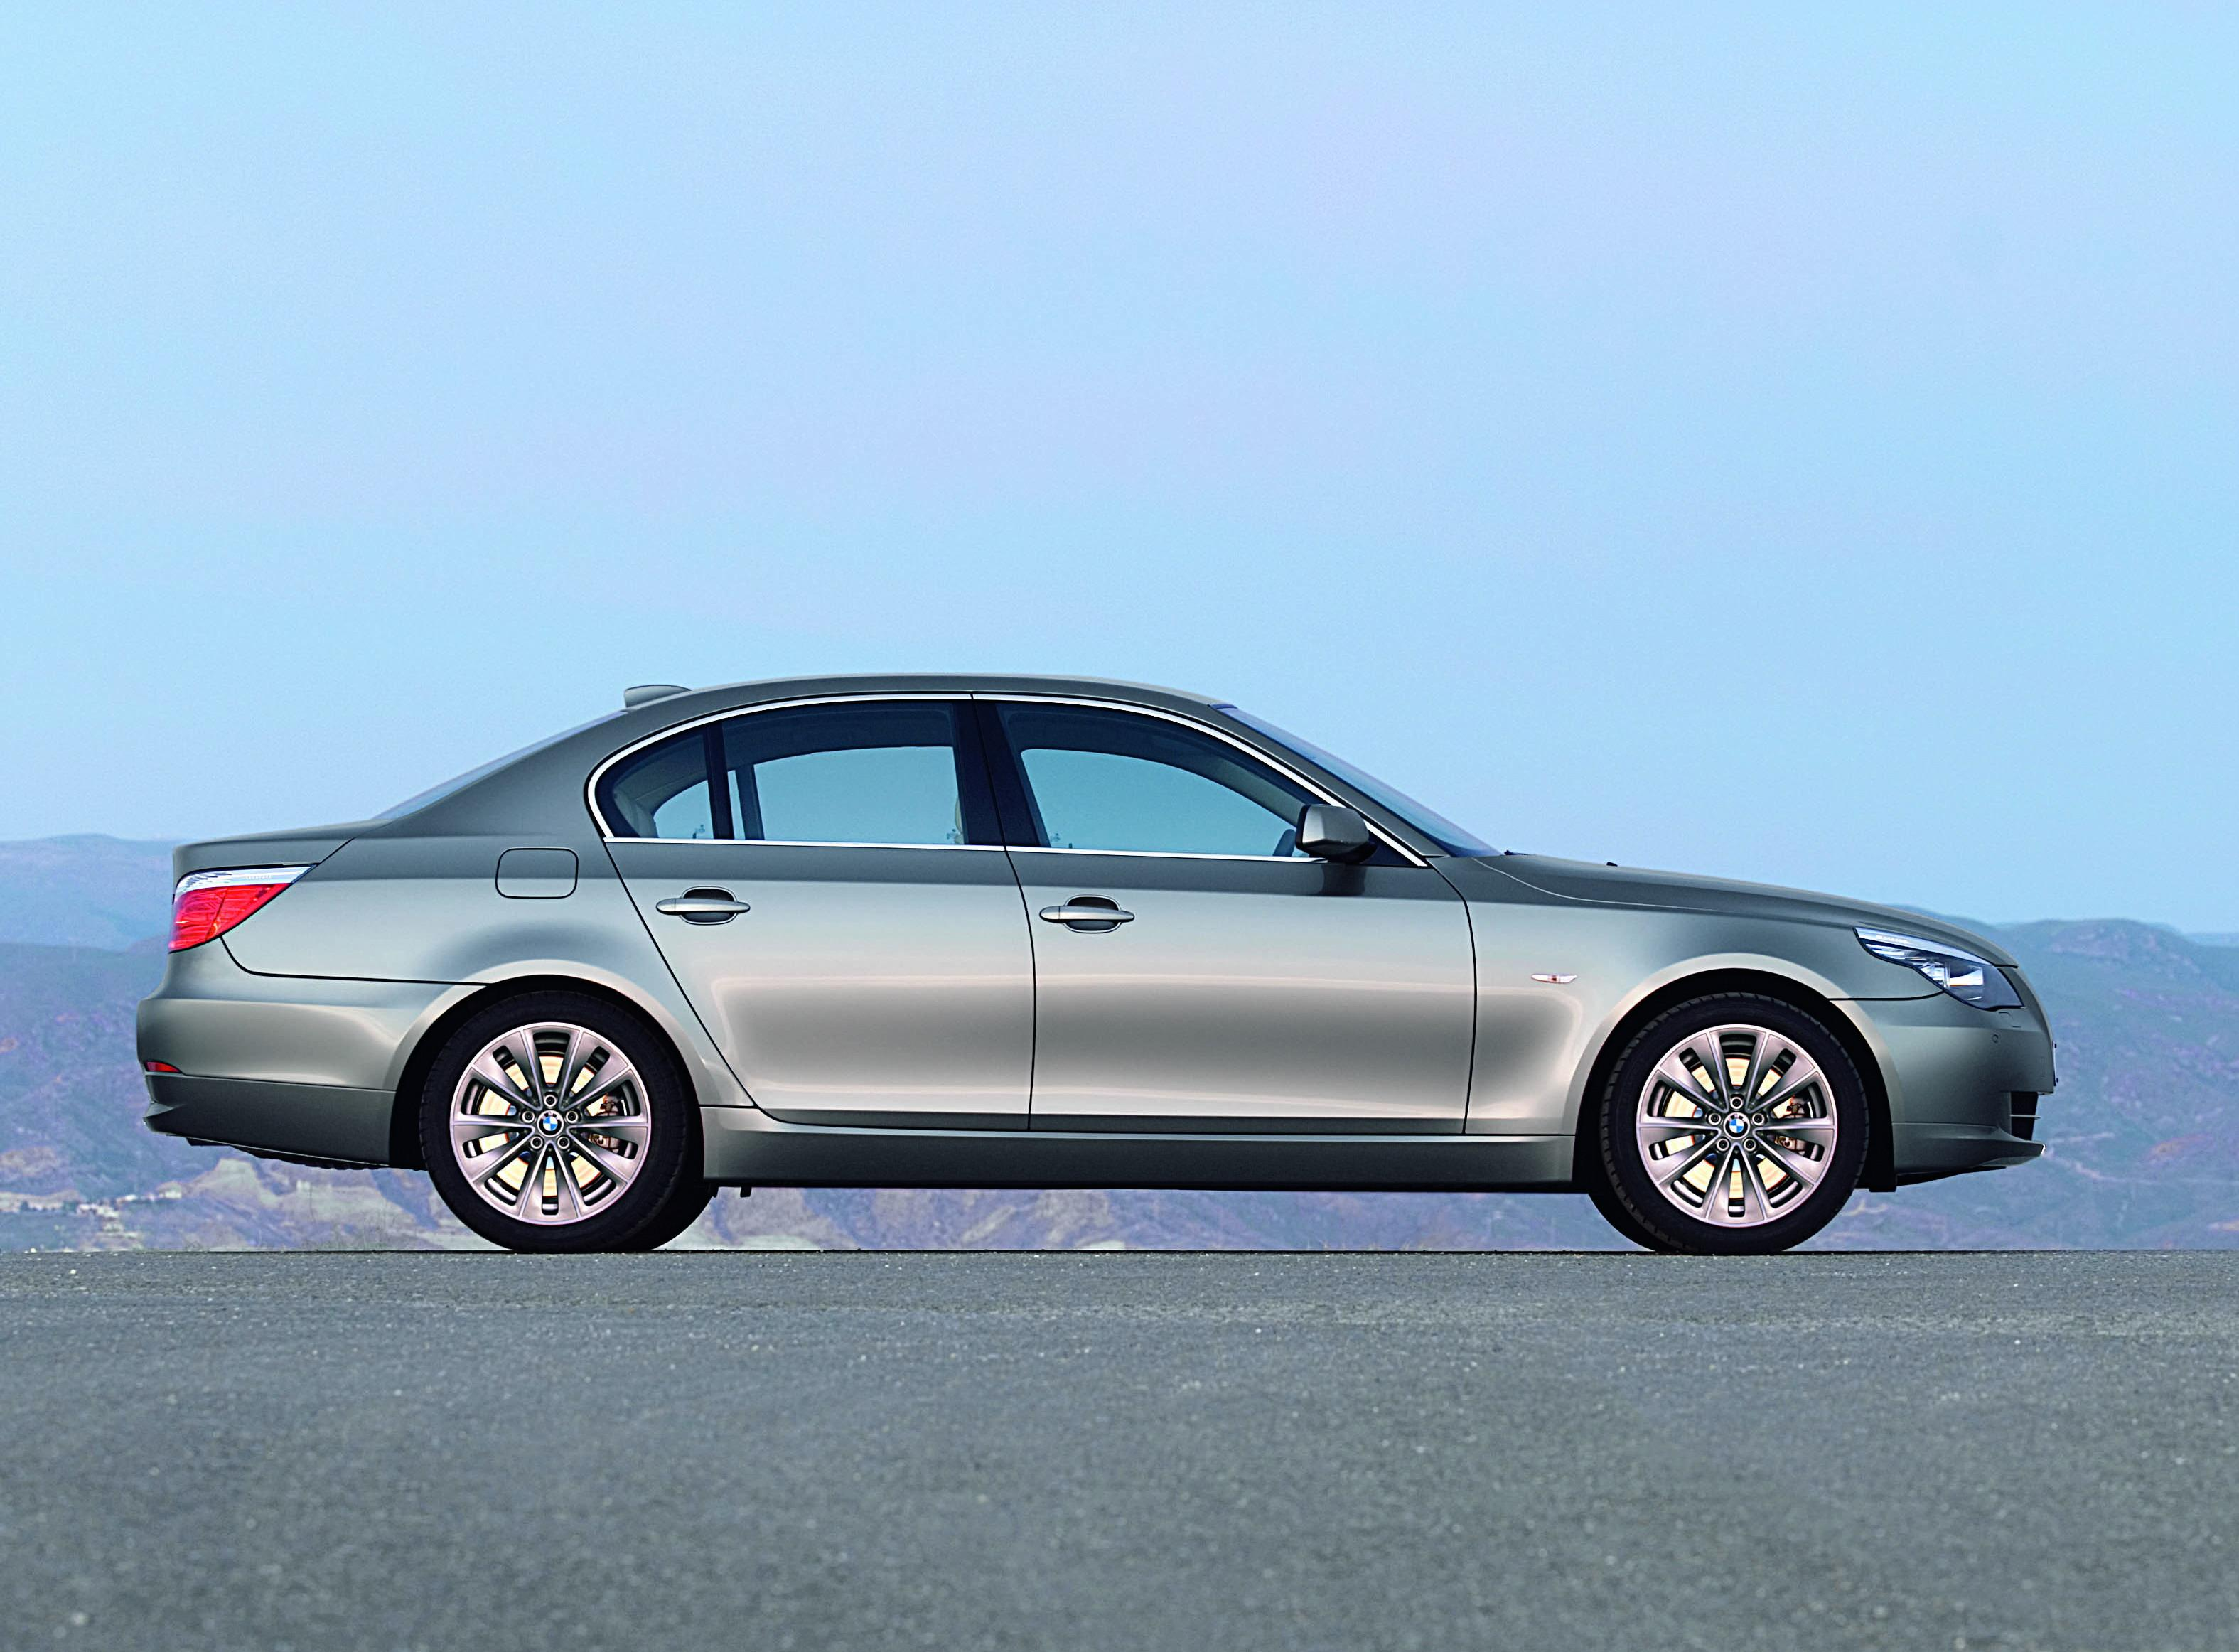 BMW 5 Series: Switching between letters and numbers